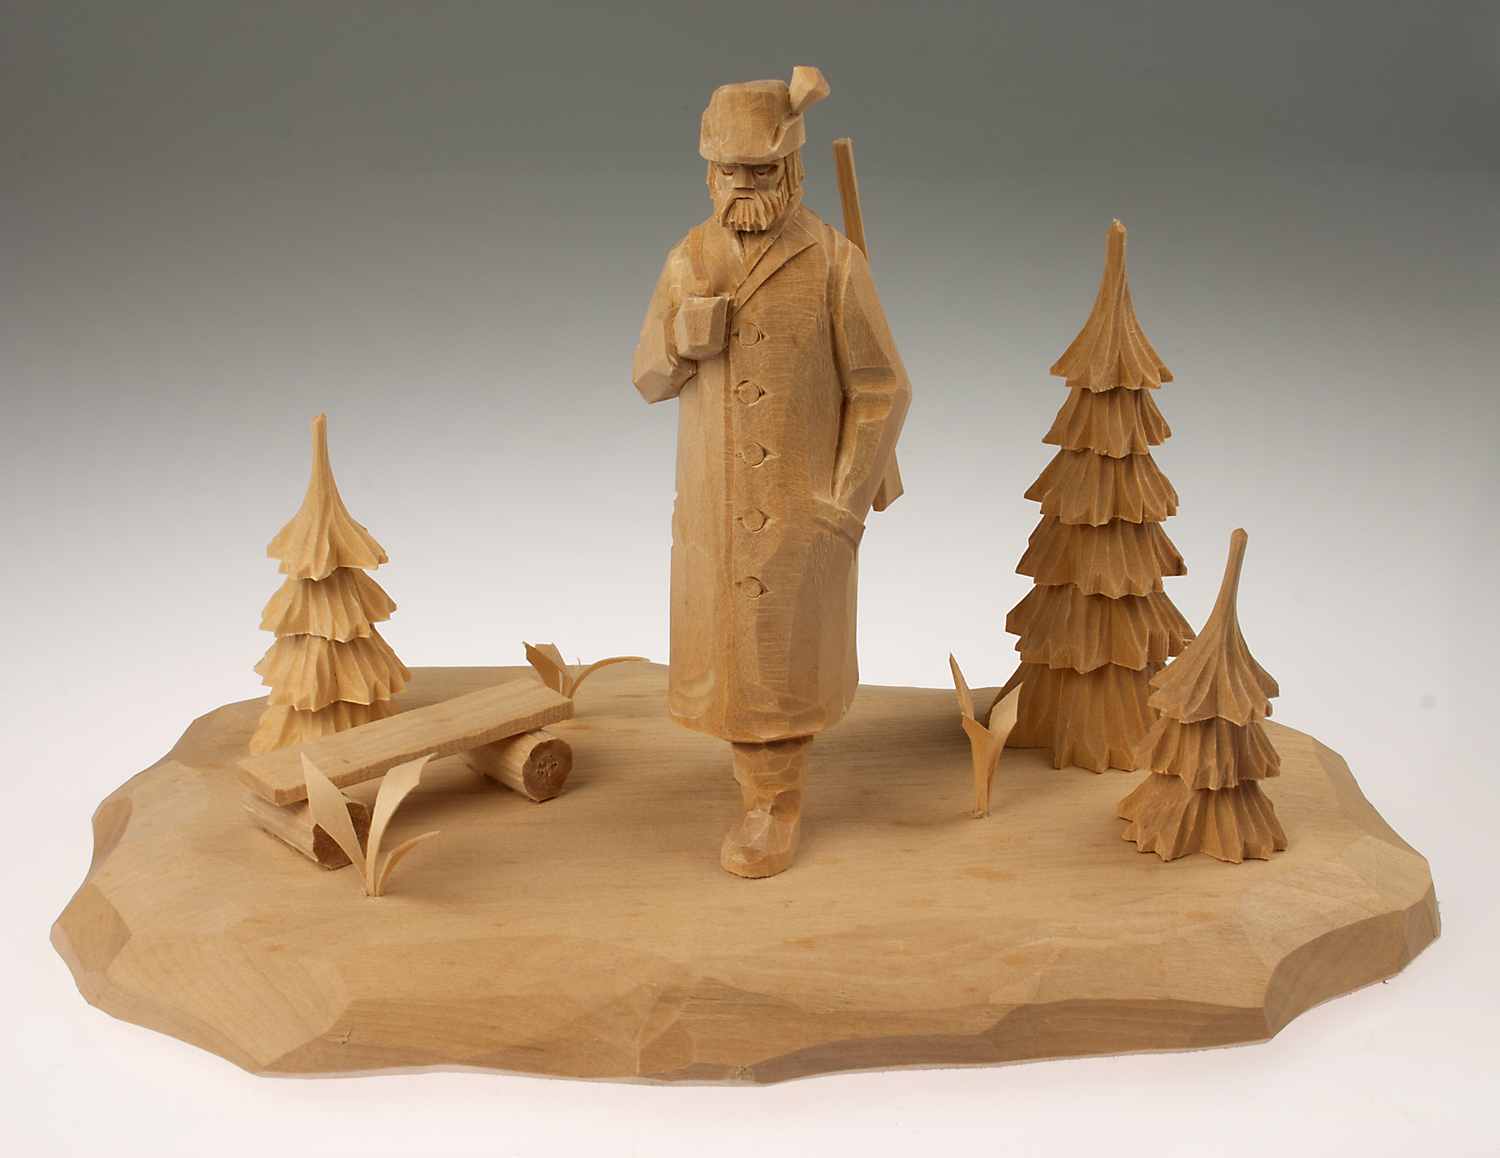 Template for re-carving, forester